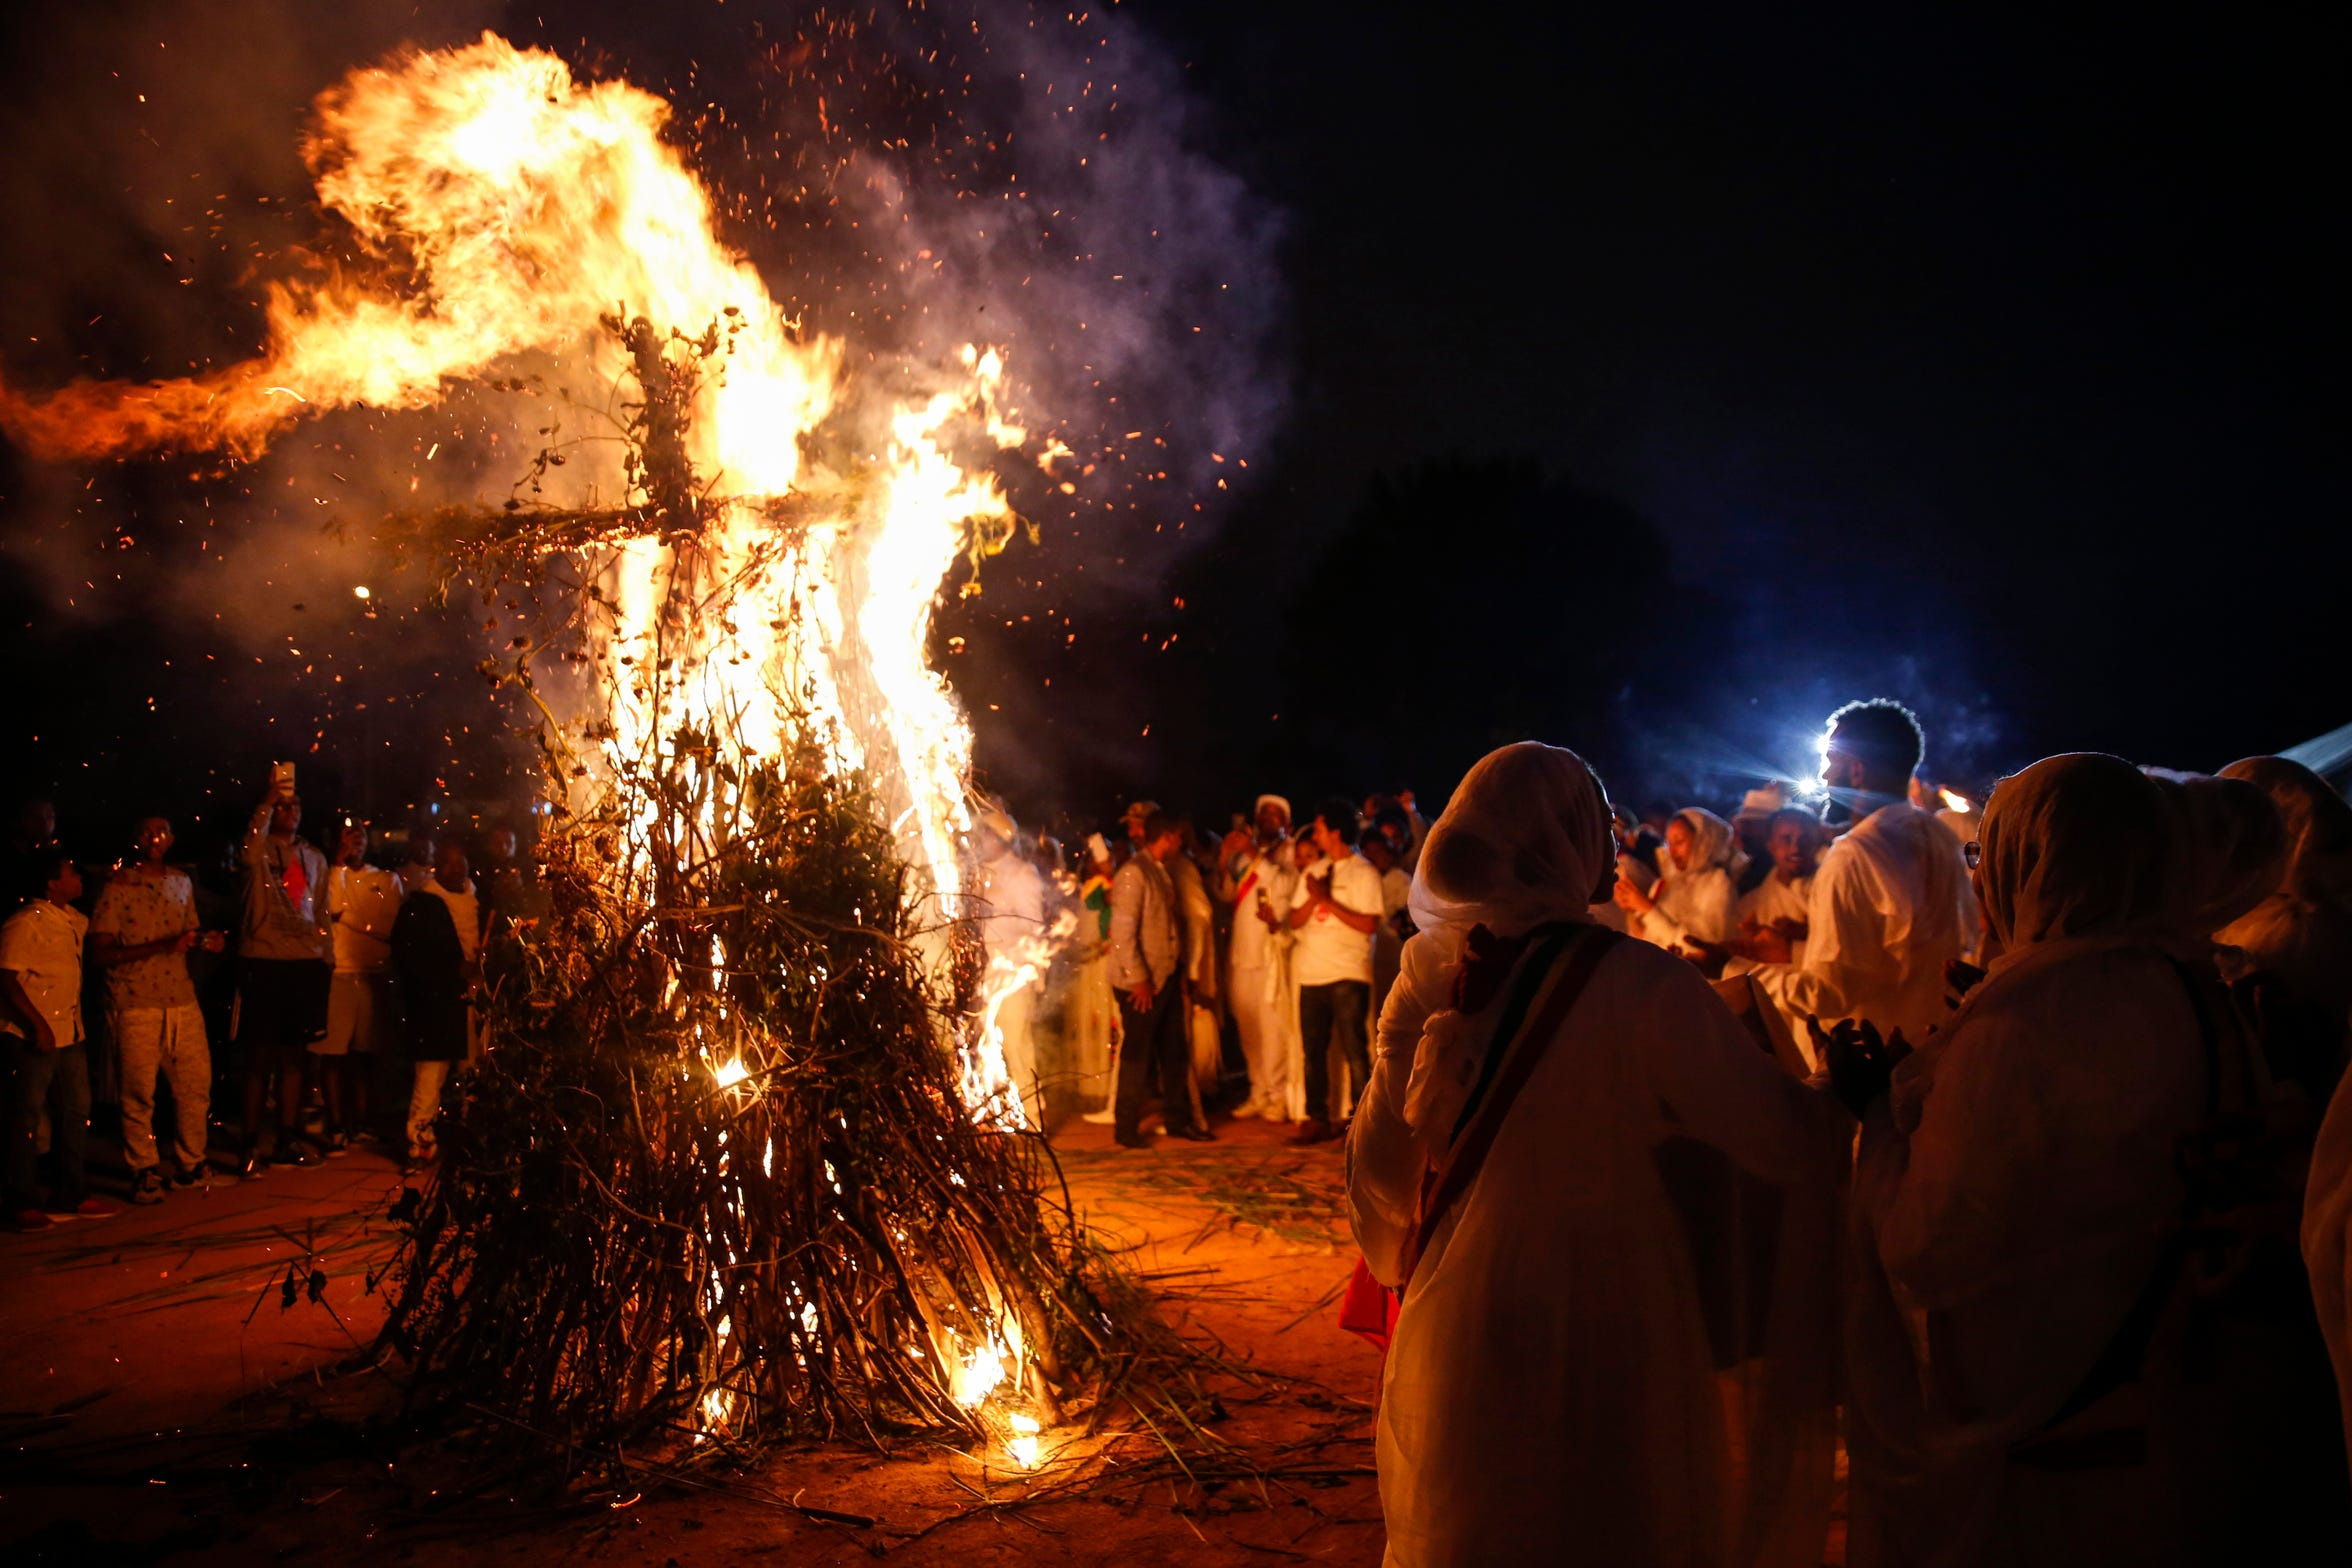 A fire shaped like a cross is burned during the Meskel celebration on Sunday, Sept. 29, 2019 in Sioux Falls. Orthodox Christian Ethiopians celebrated Meskel, an annual holiday commemorating the discovery of the true cross.